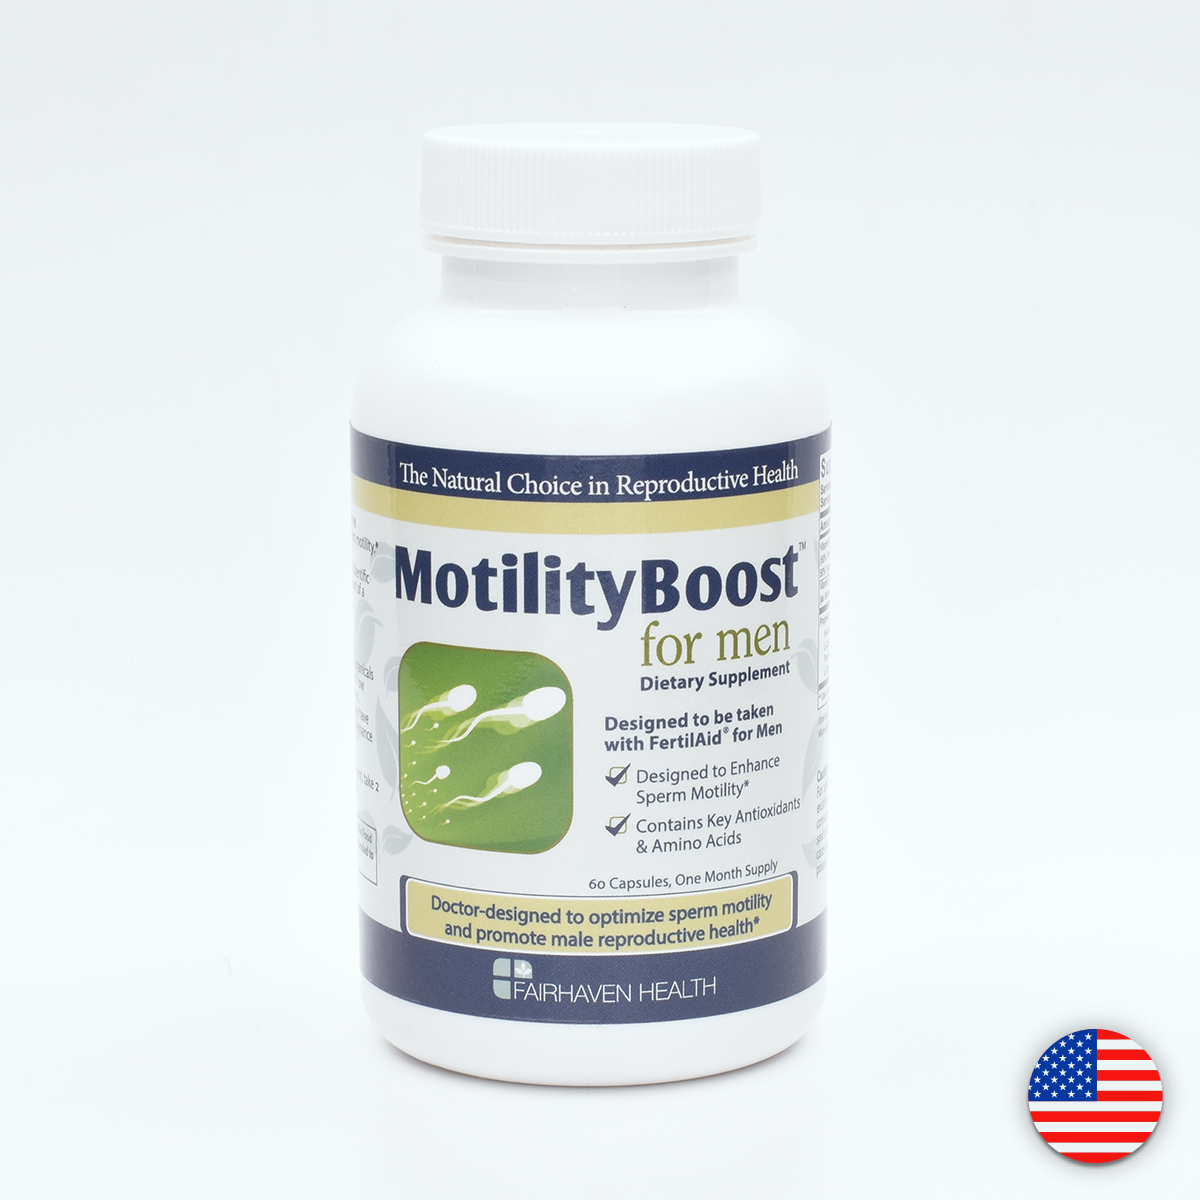 Motility Boost